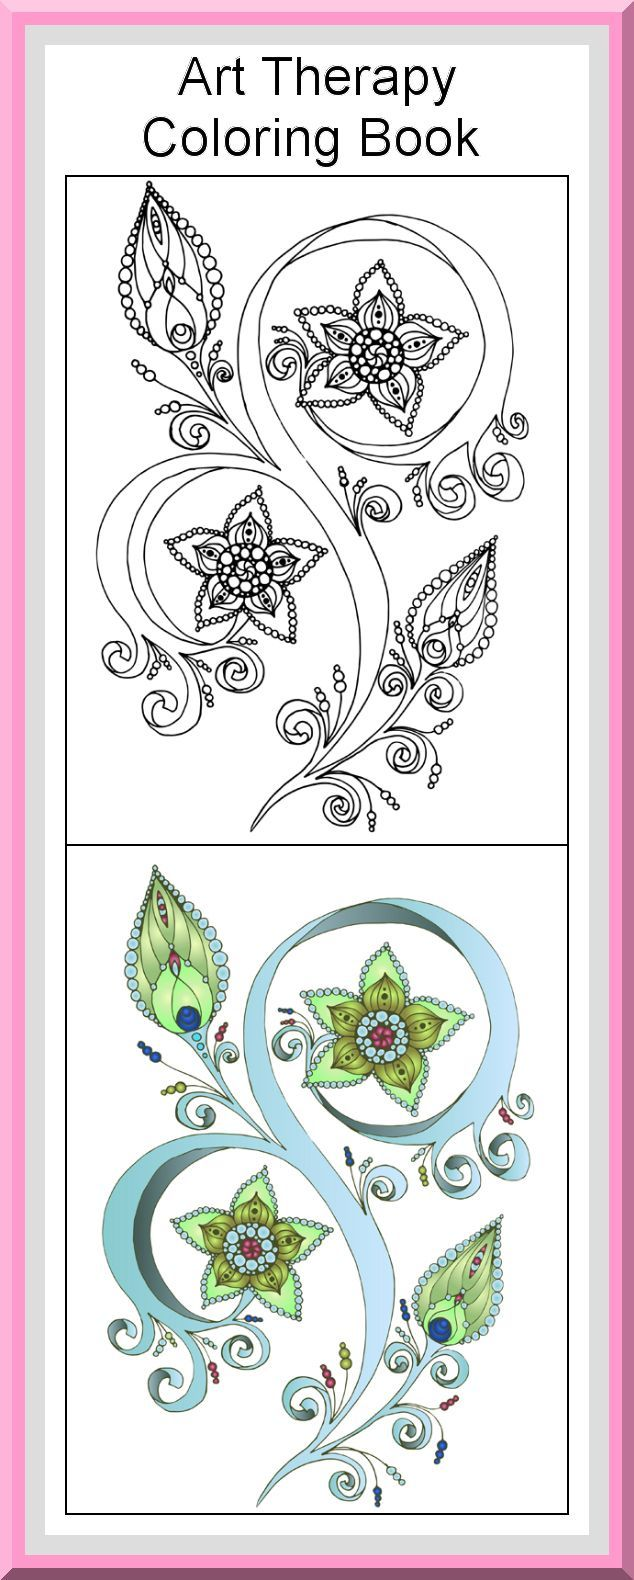 Mandala coloring pages art therapy recovery - Printable Art Therapy Coloring Pages 30 High Definition Coloring Pages Black Outlines With Colored Examples